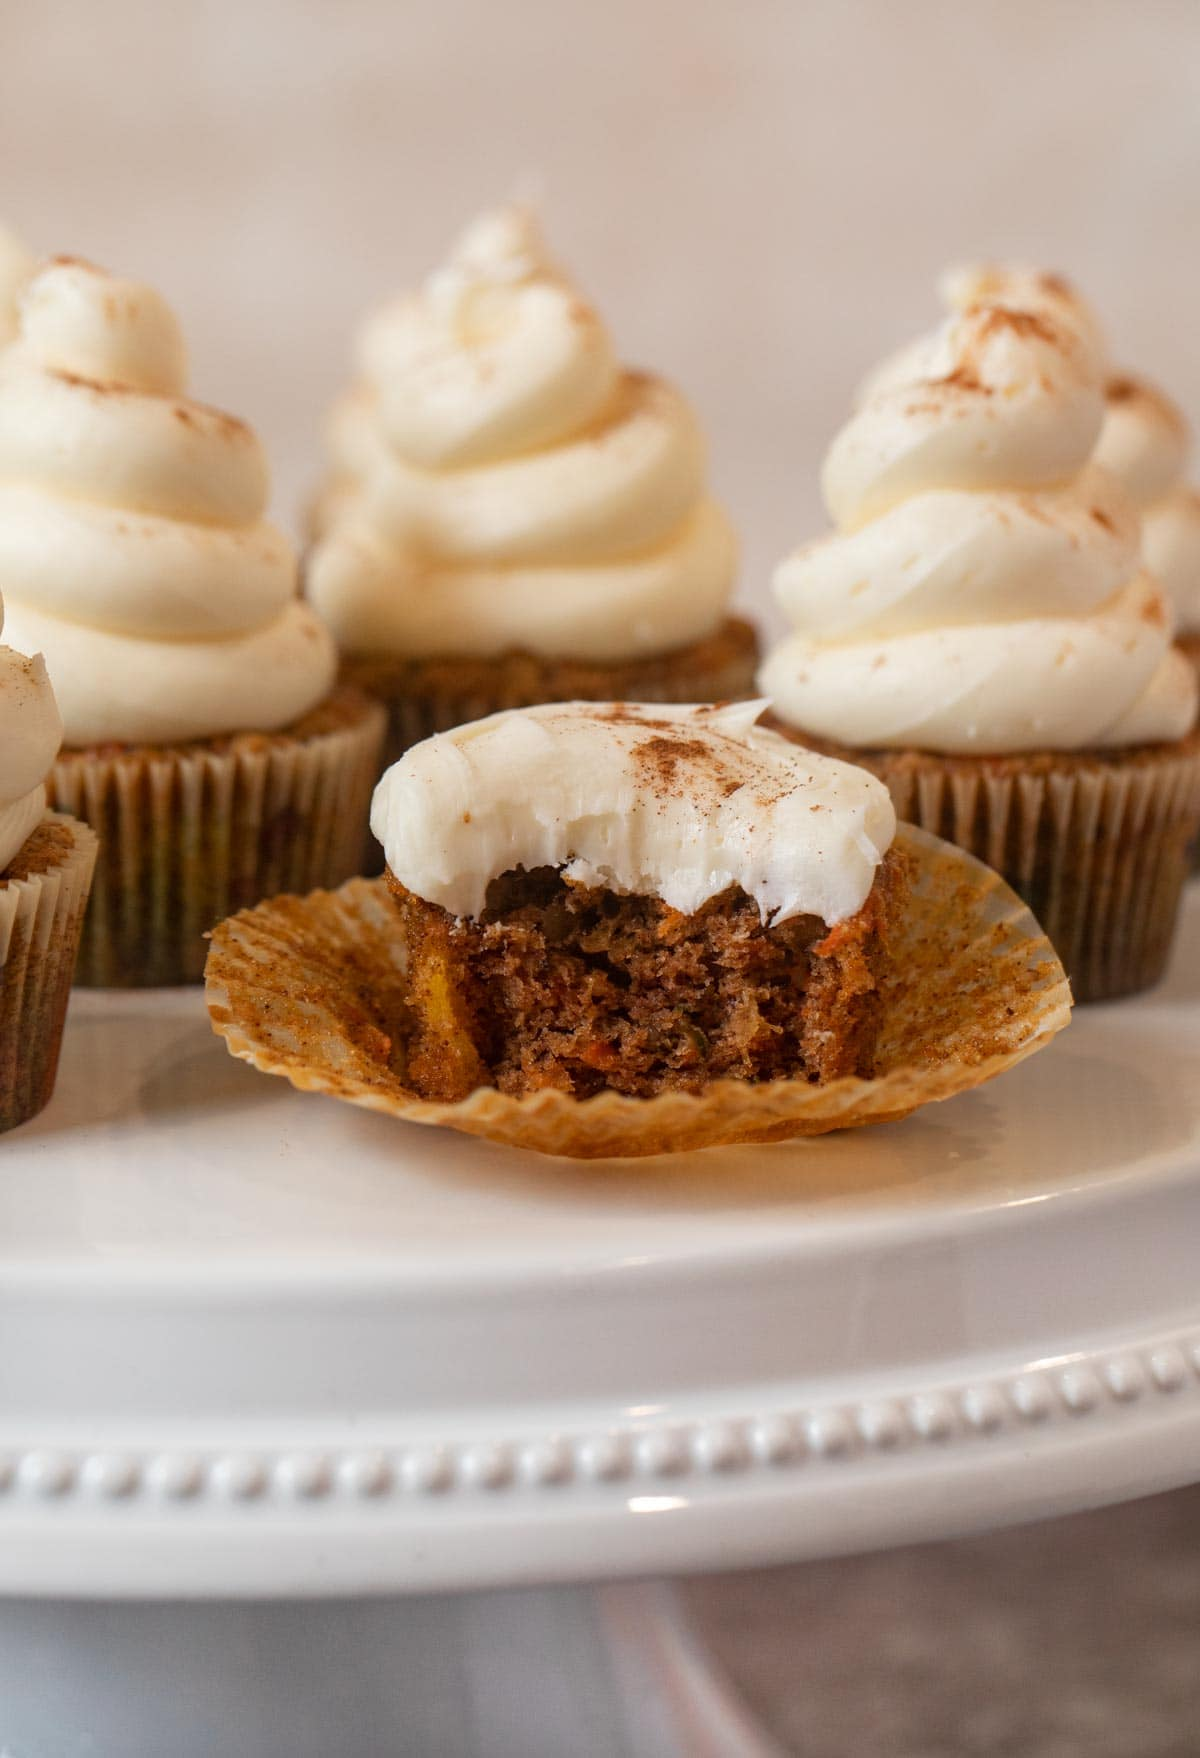 Carrot Cupcake with bite removed on cake stand